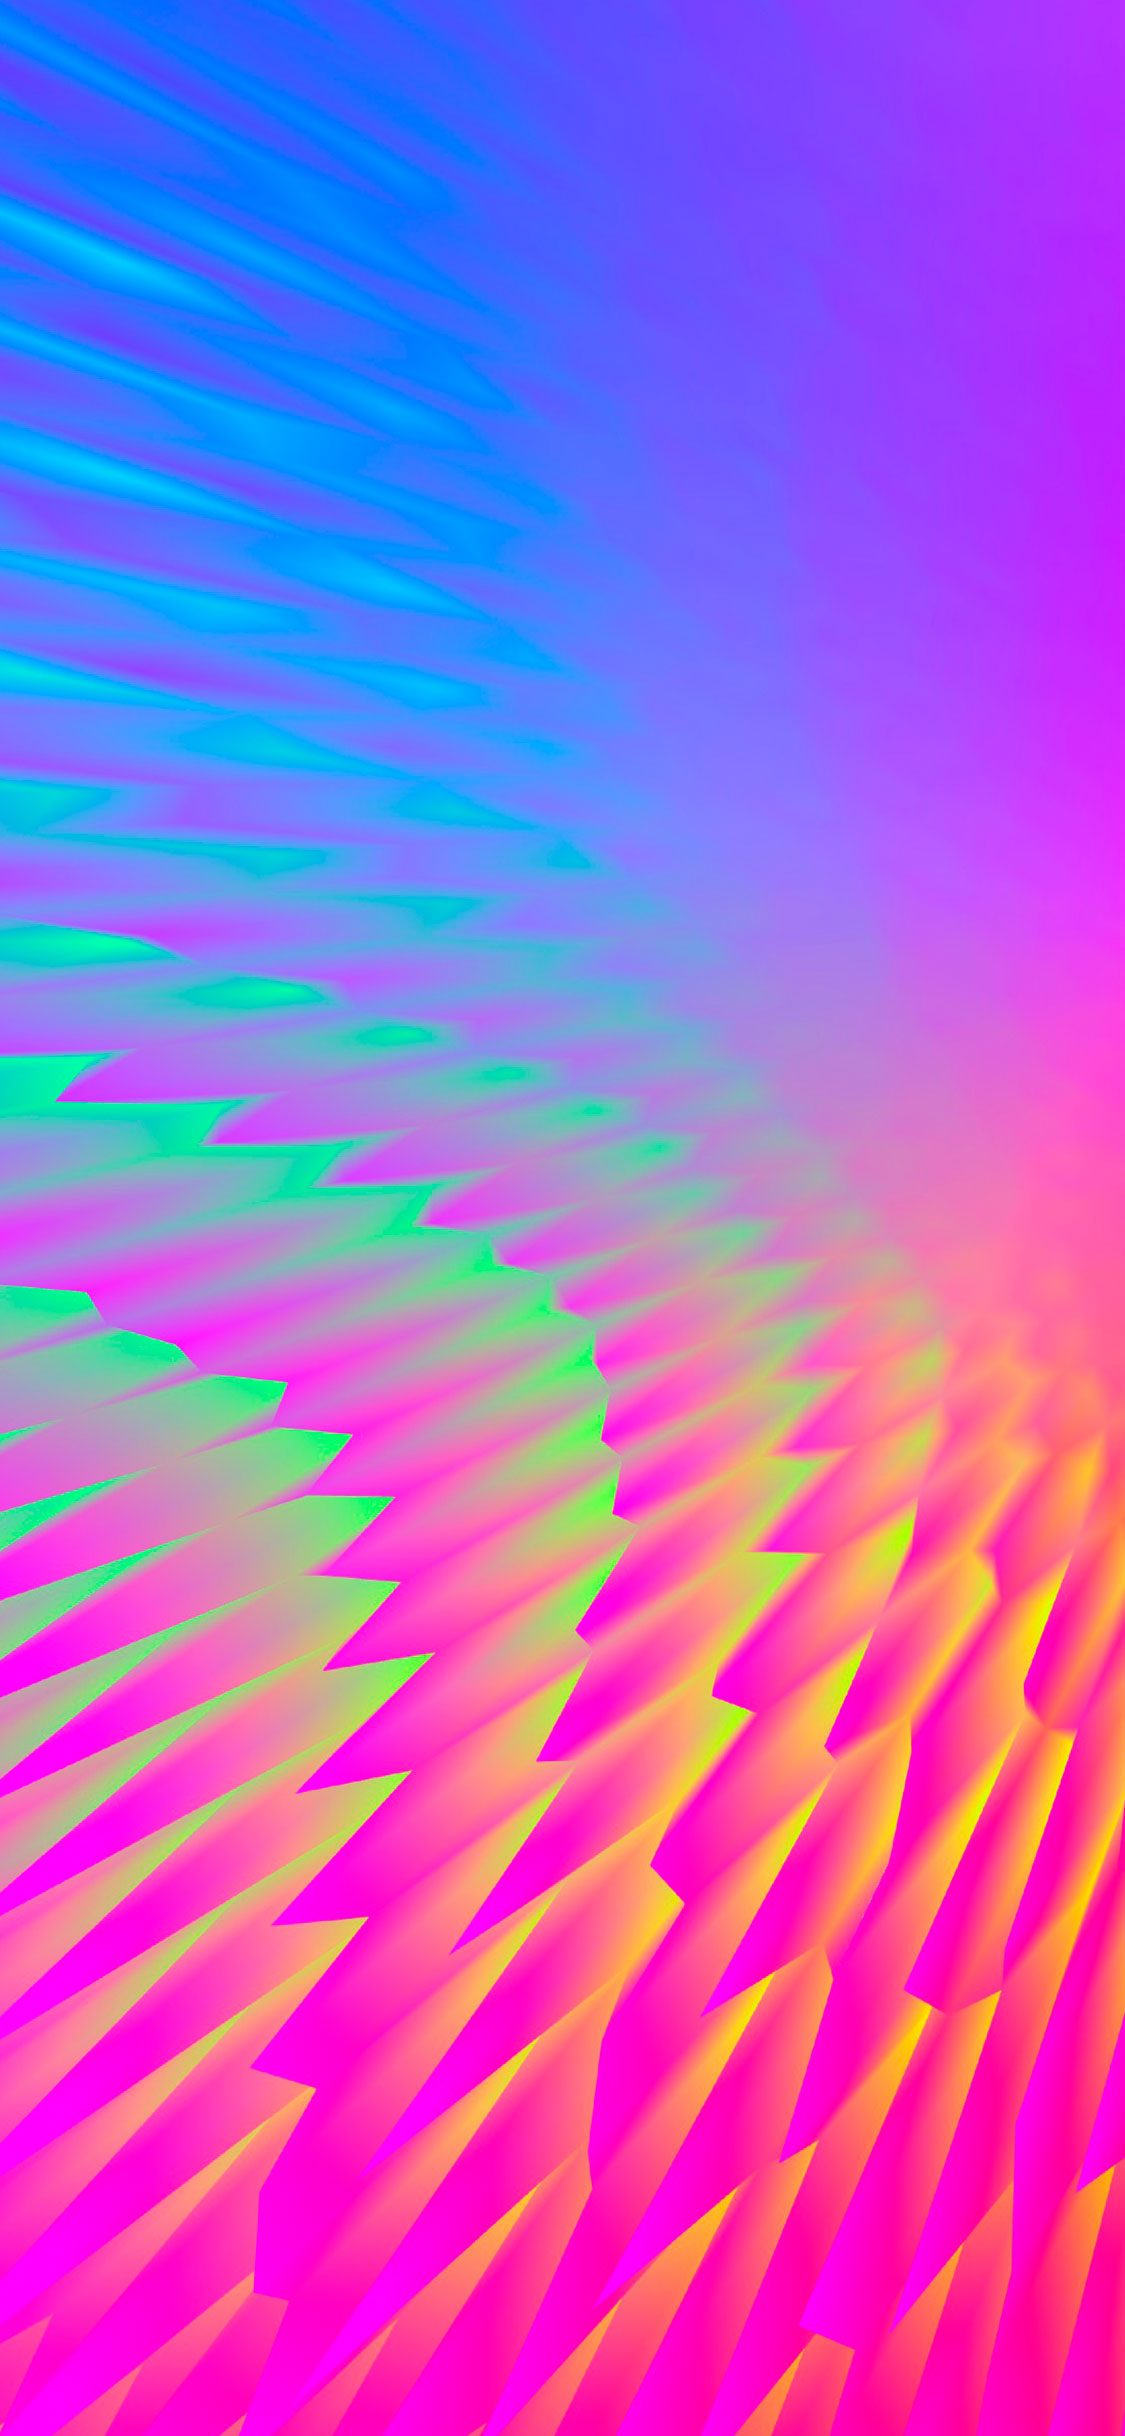 iPhone wallpaper abstract2 Fonds d'écran iPhone du 10/05/2018